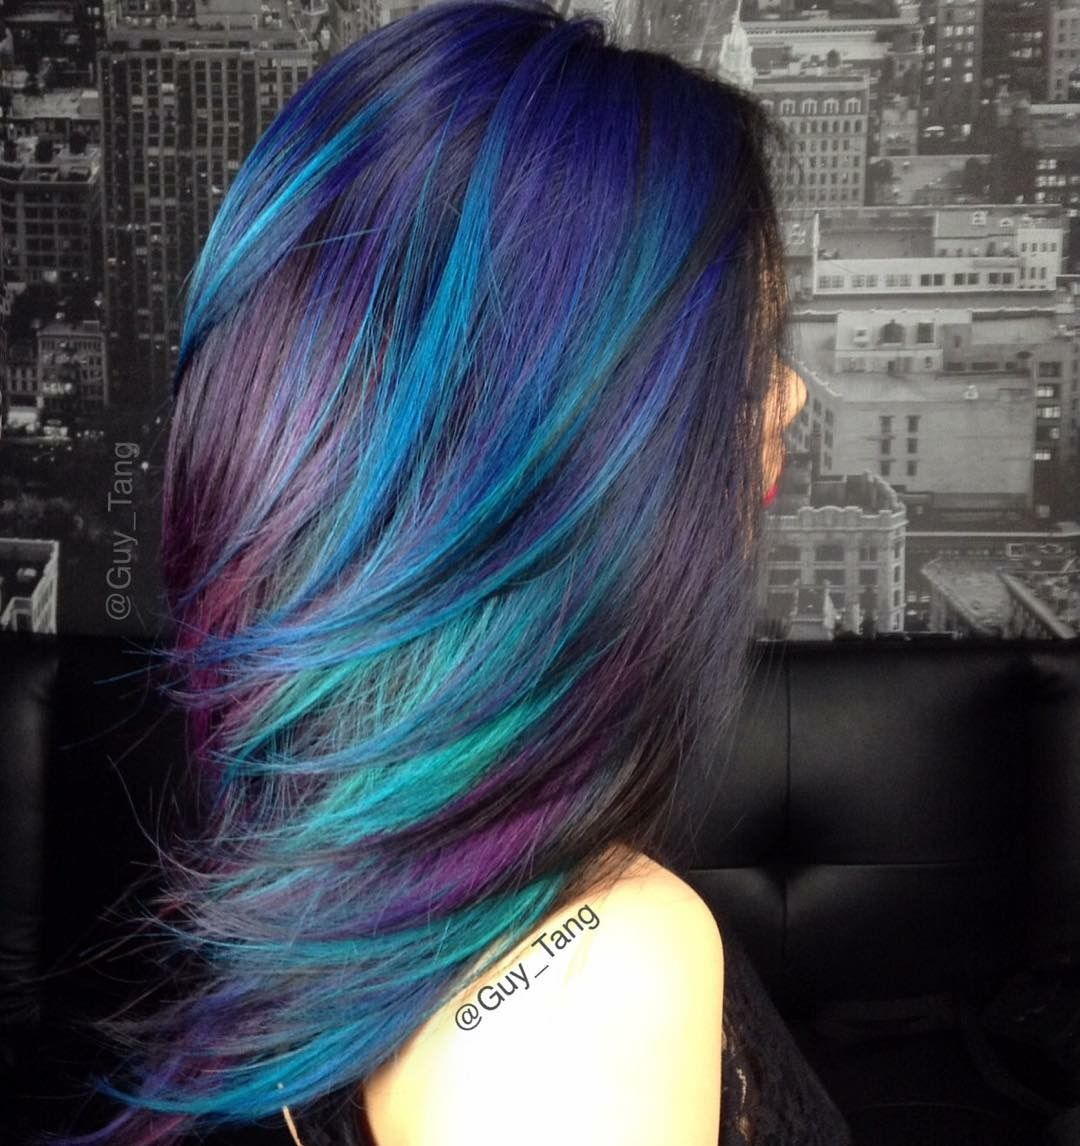 Bright oil slick  Hair  Pinterest  Bright Oil and Hair coloring